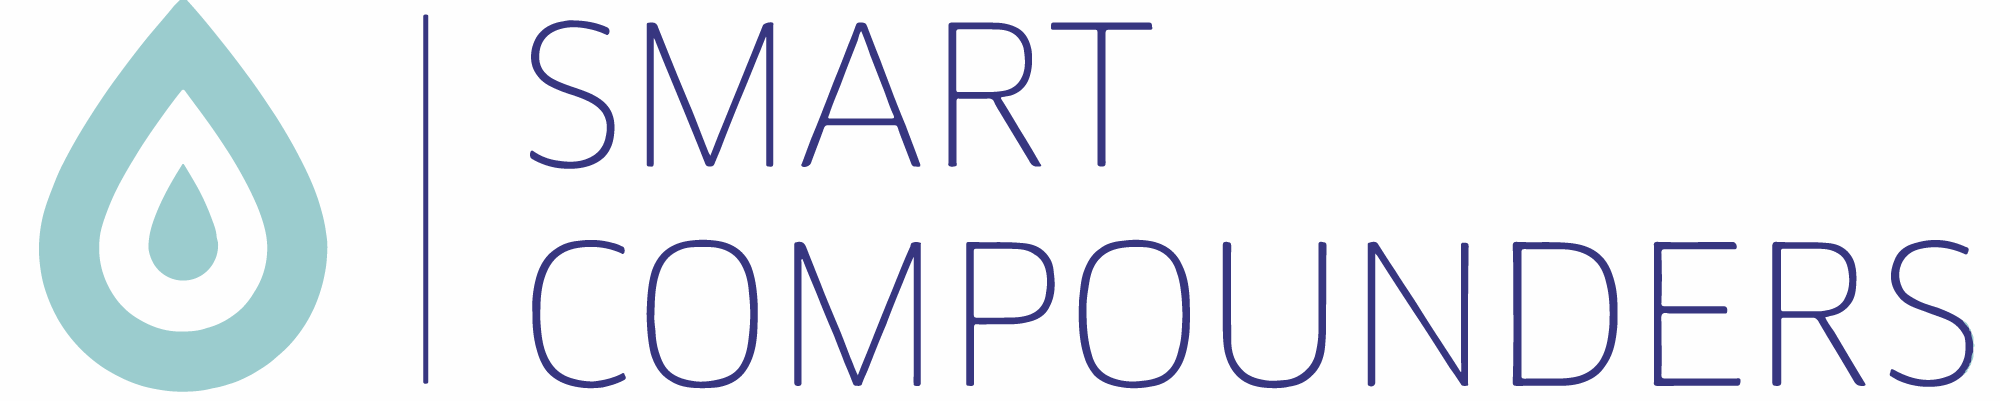 SmartCompounders